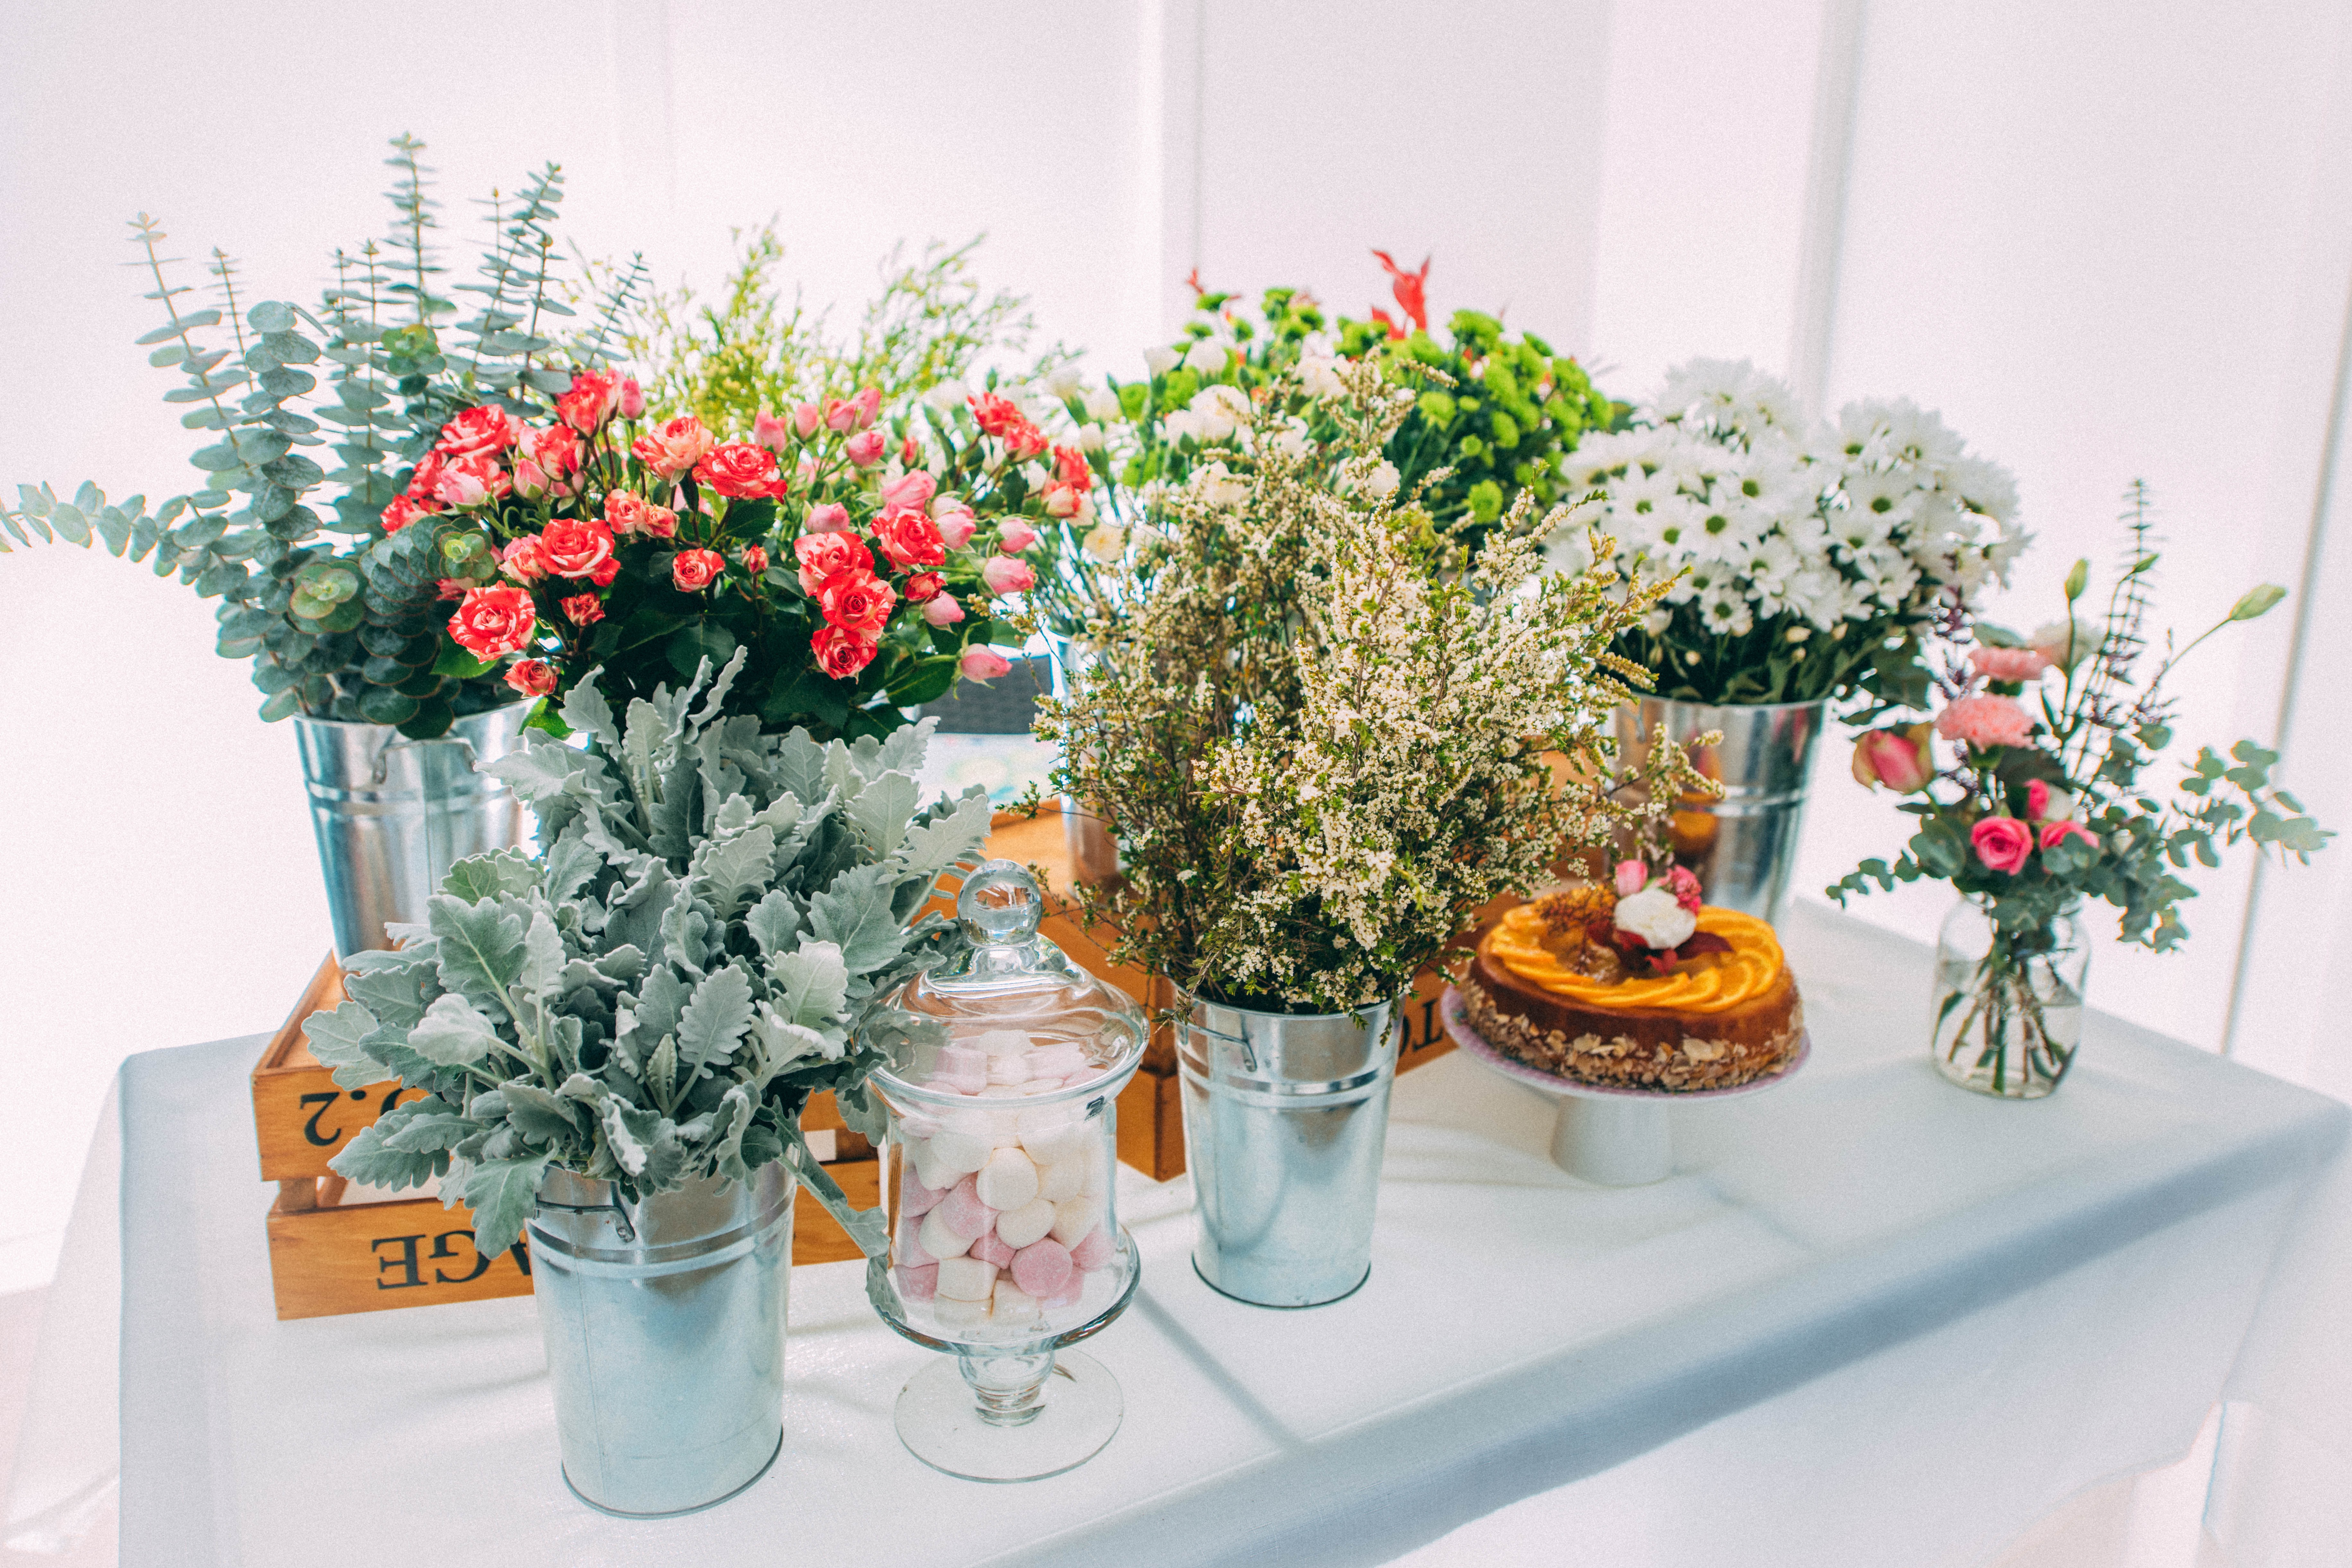 Graceful Blooms Mortdale events florist - flower crown party